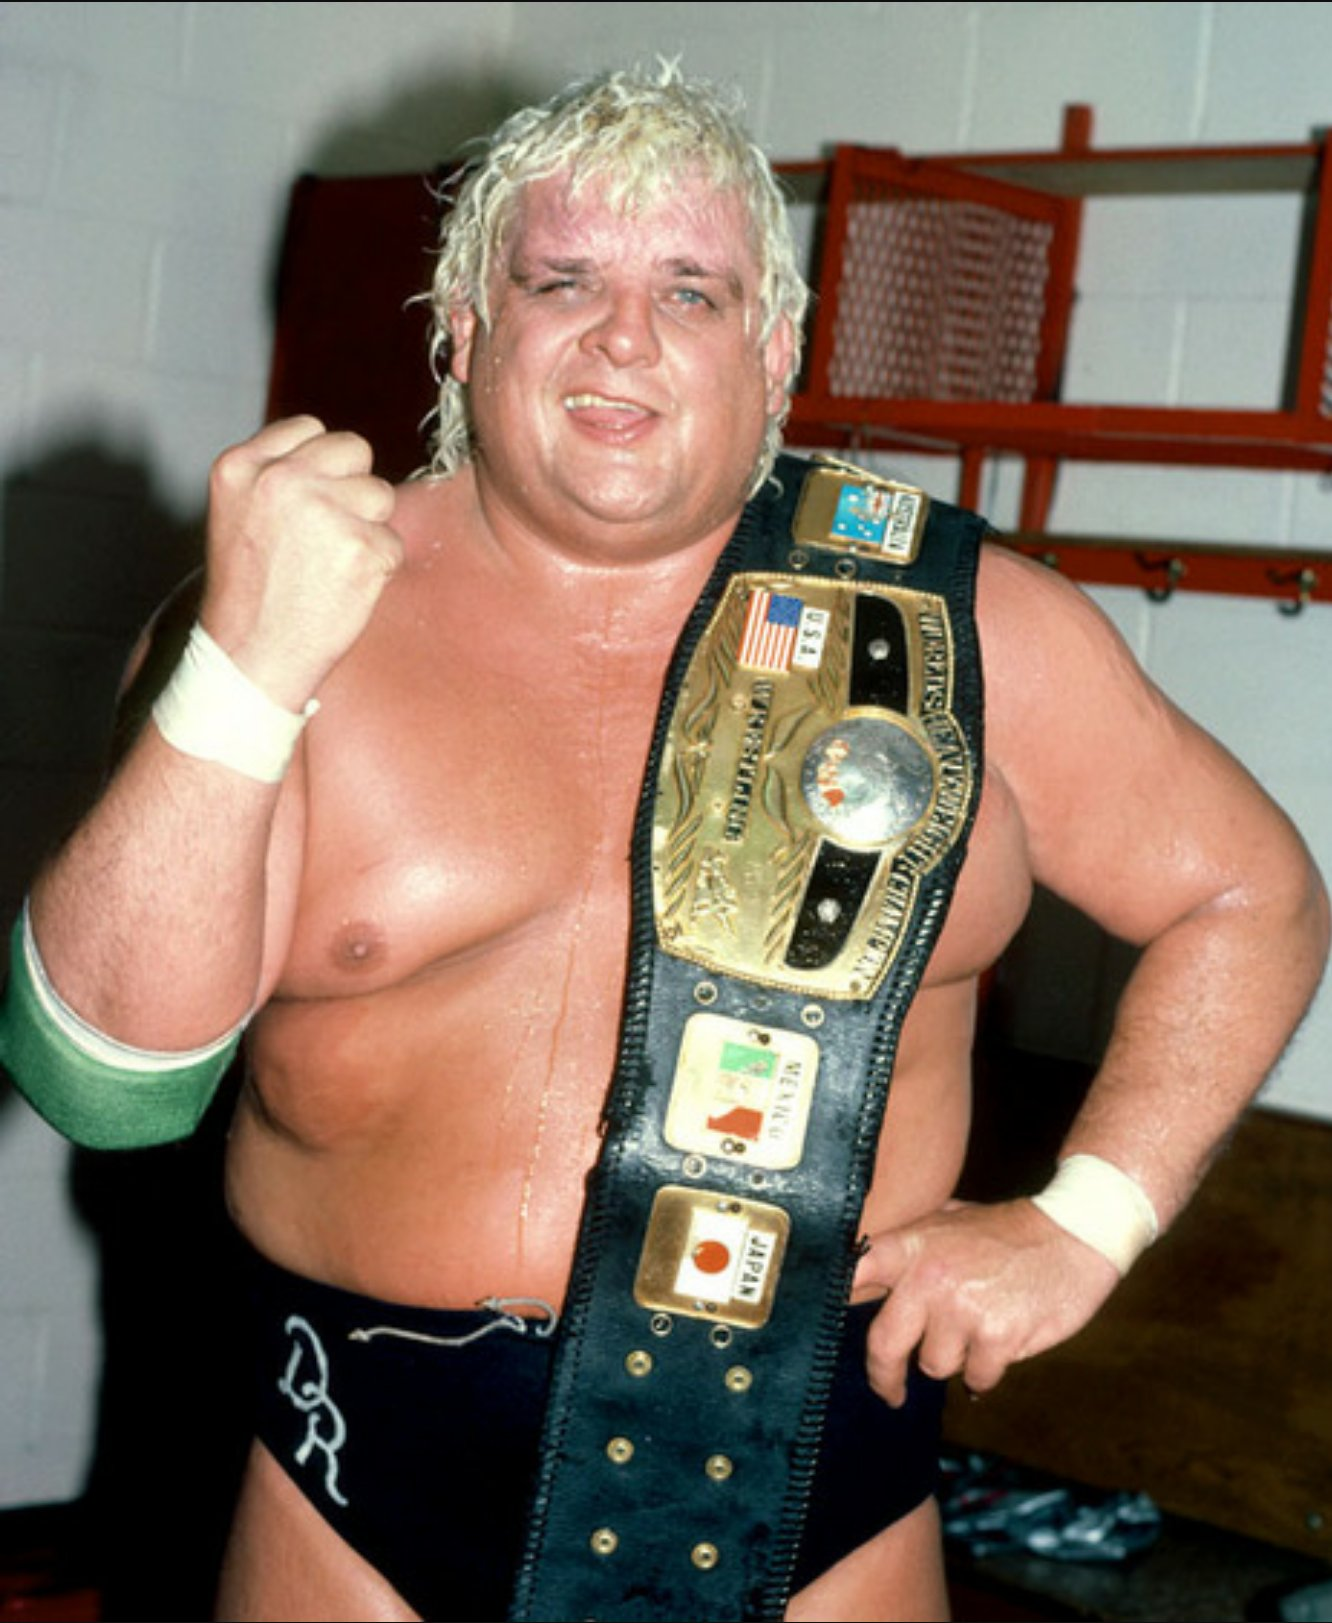 Happy birthday to my first wrestling hero. The American Dream Dusty Rhodes.